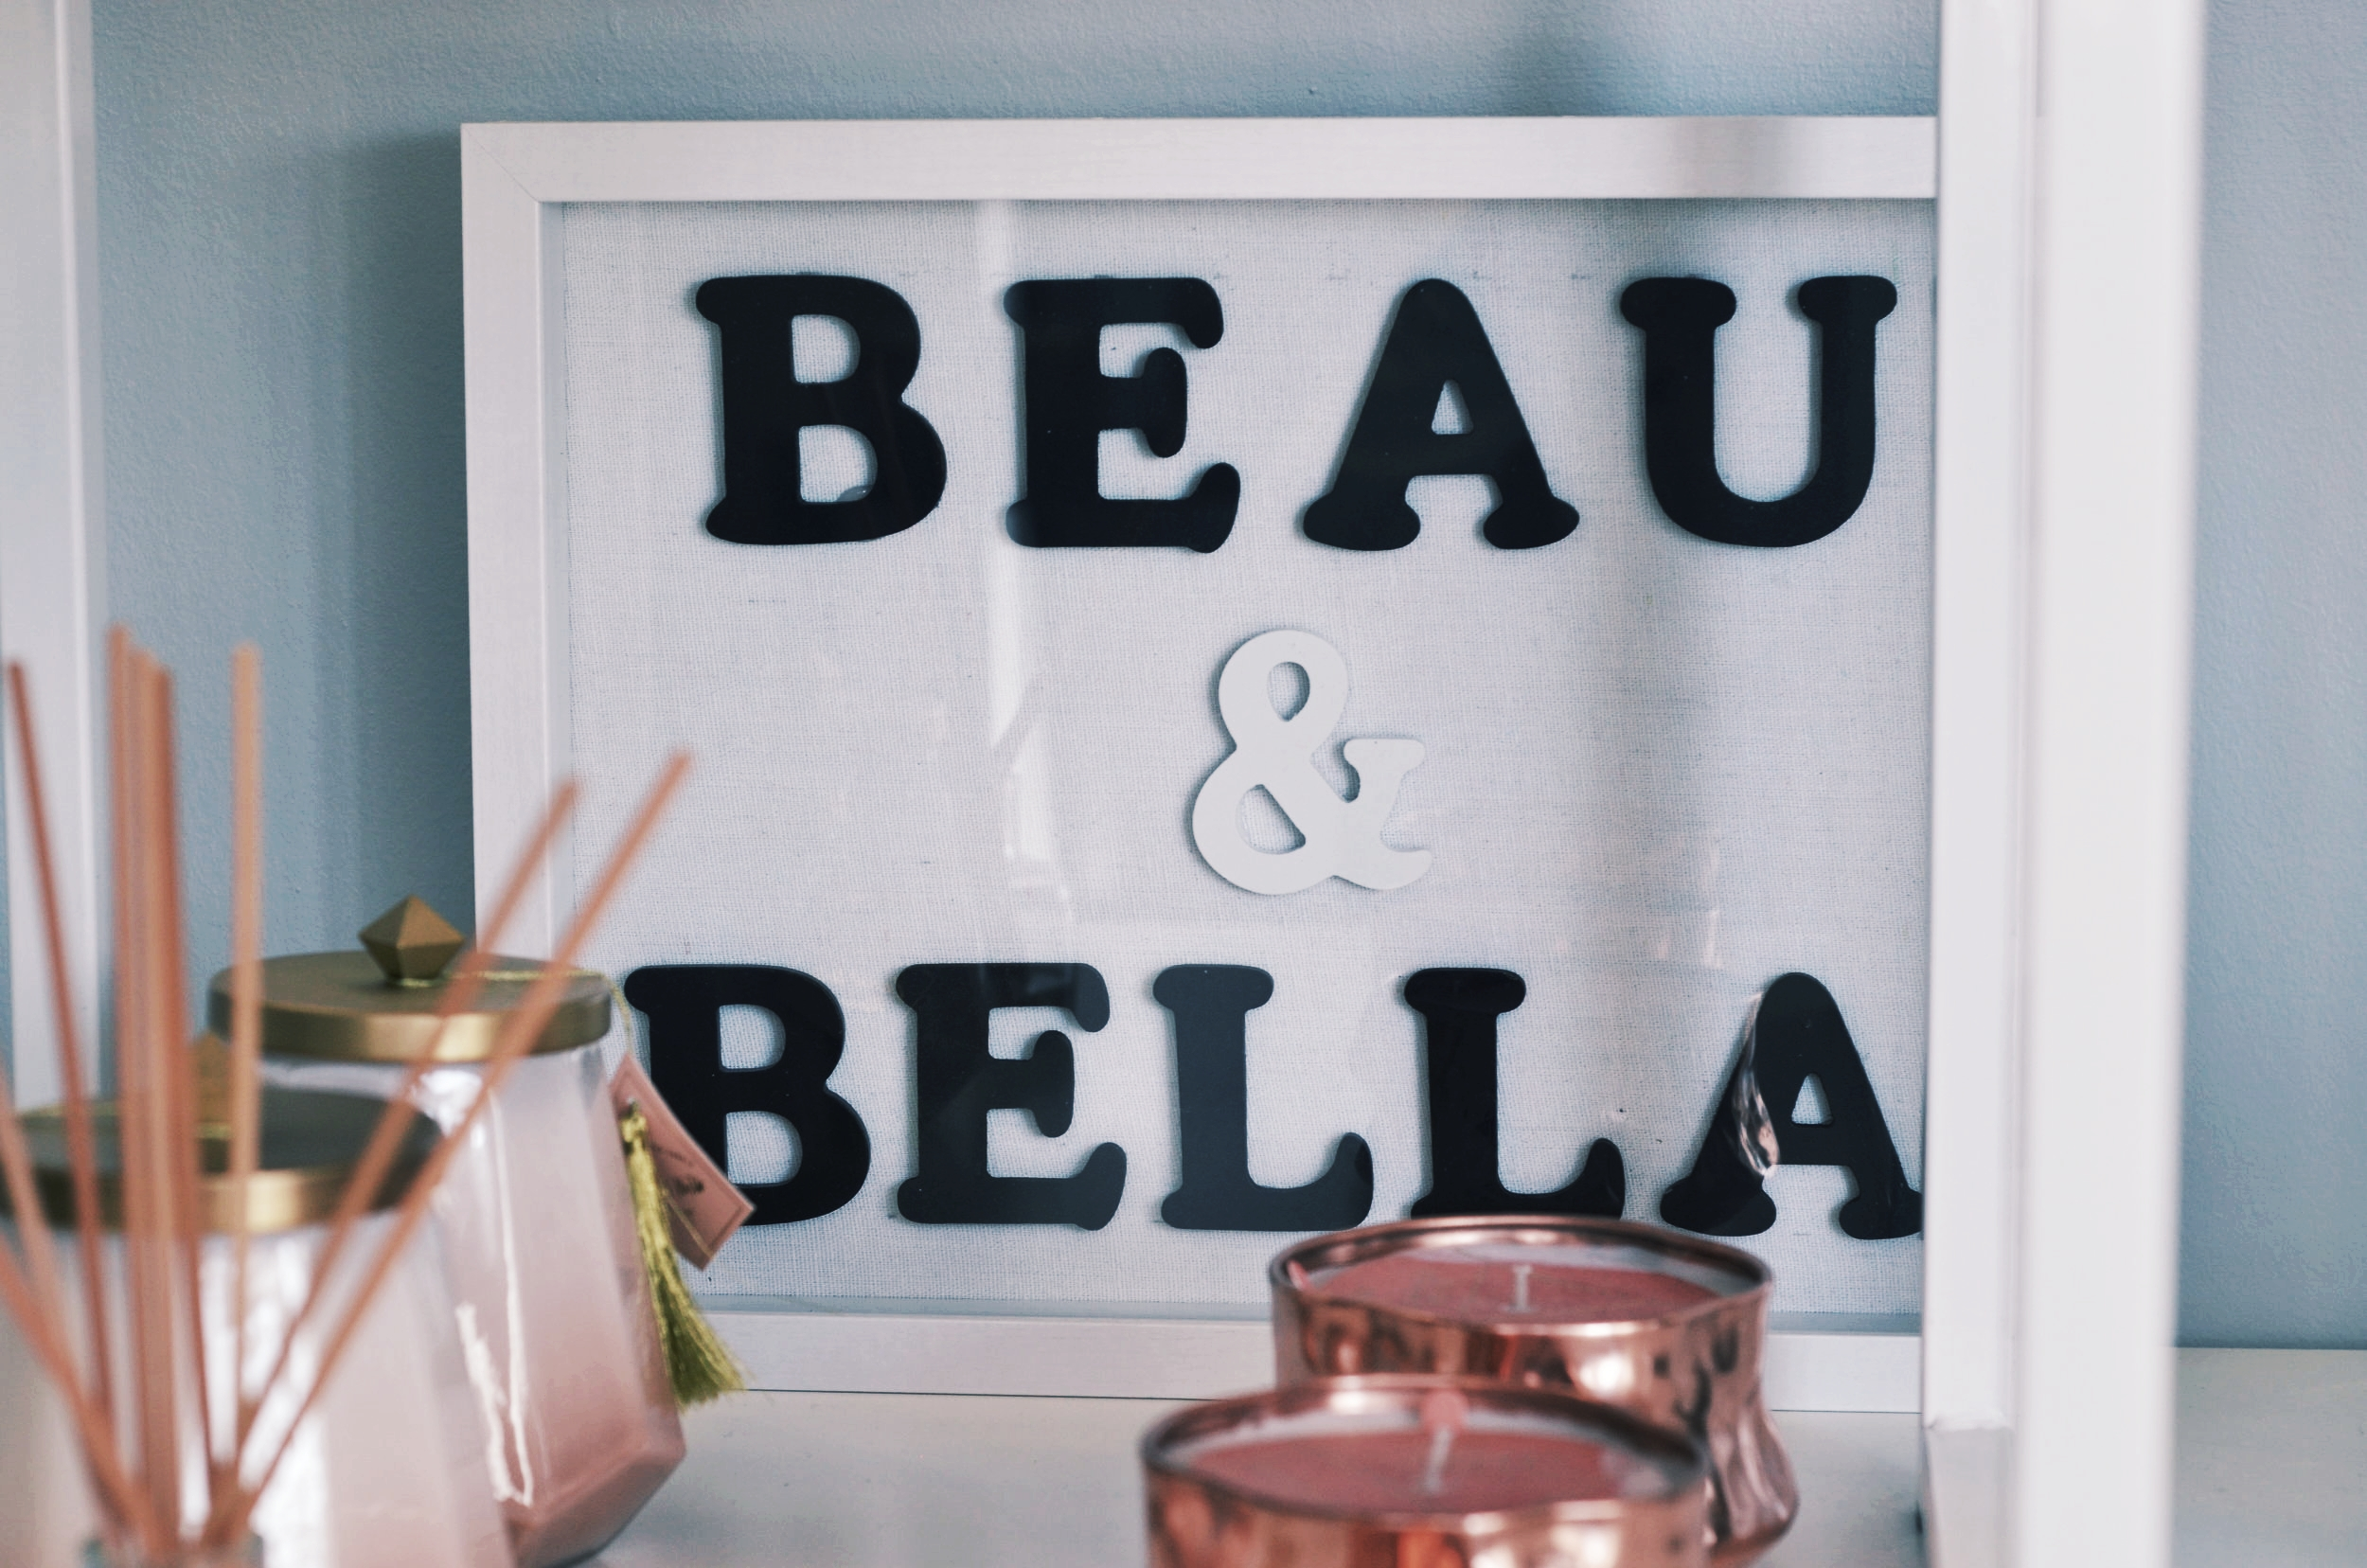 Beau & Bella with candles.JPG